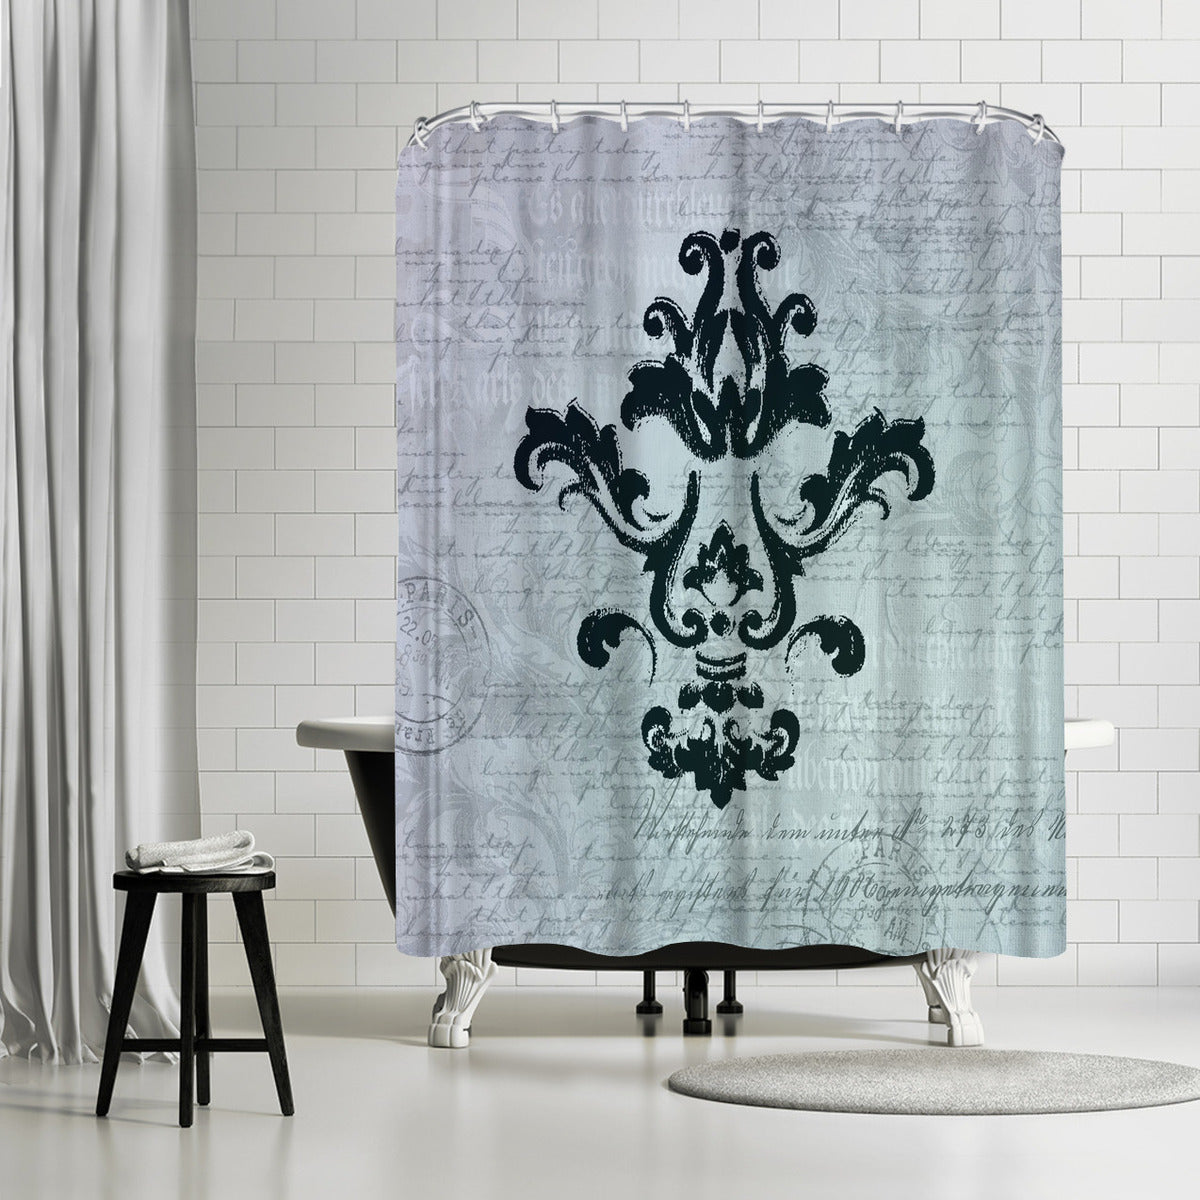 Teal Baroque Ornament by Lebens Art Shower Curtain - Shower Curtain - Americanflat